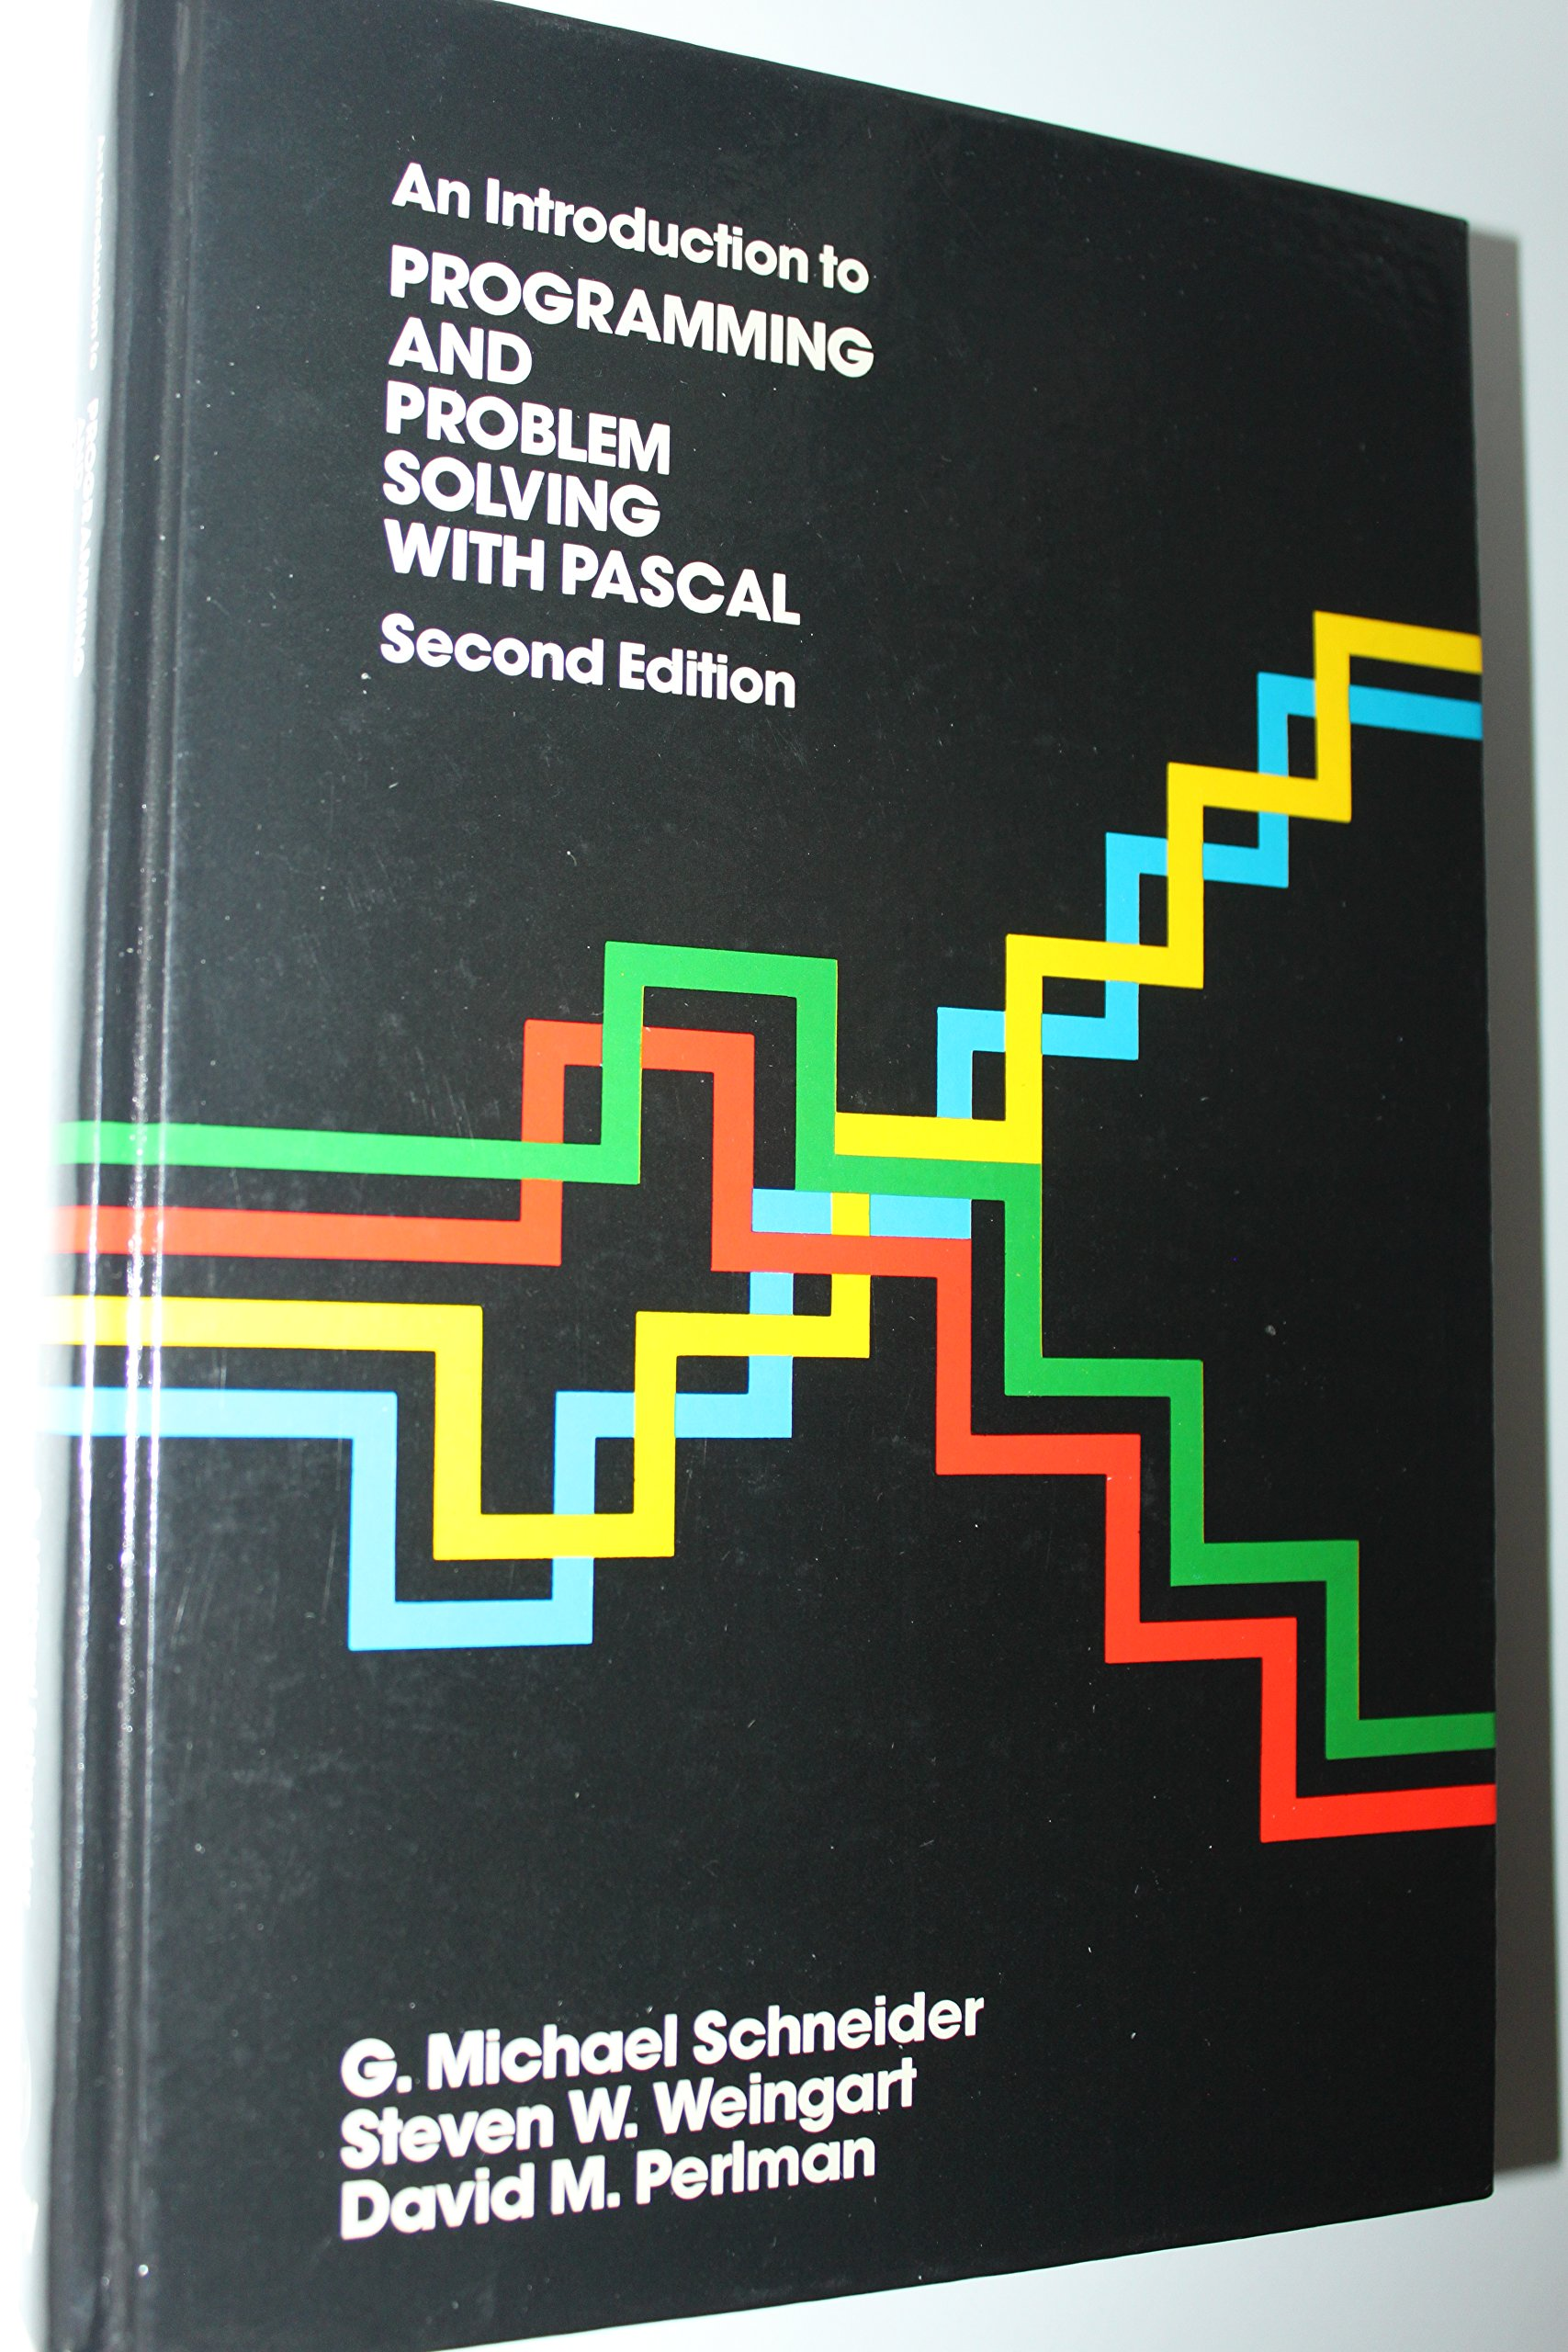 Introduction to Programming and Problem Solving with PASCAL: Amazon